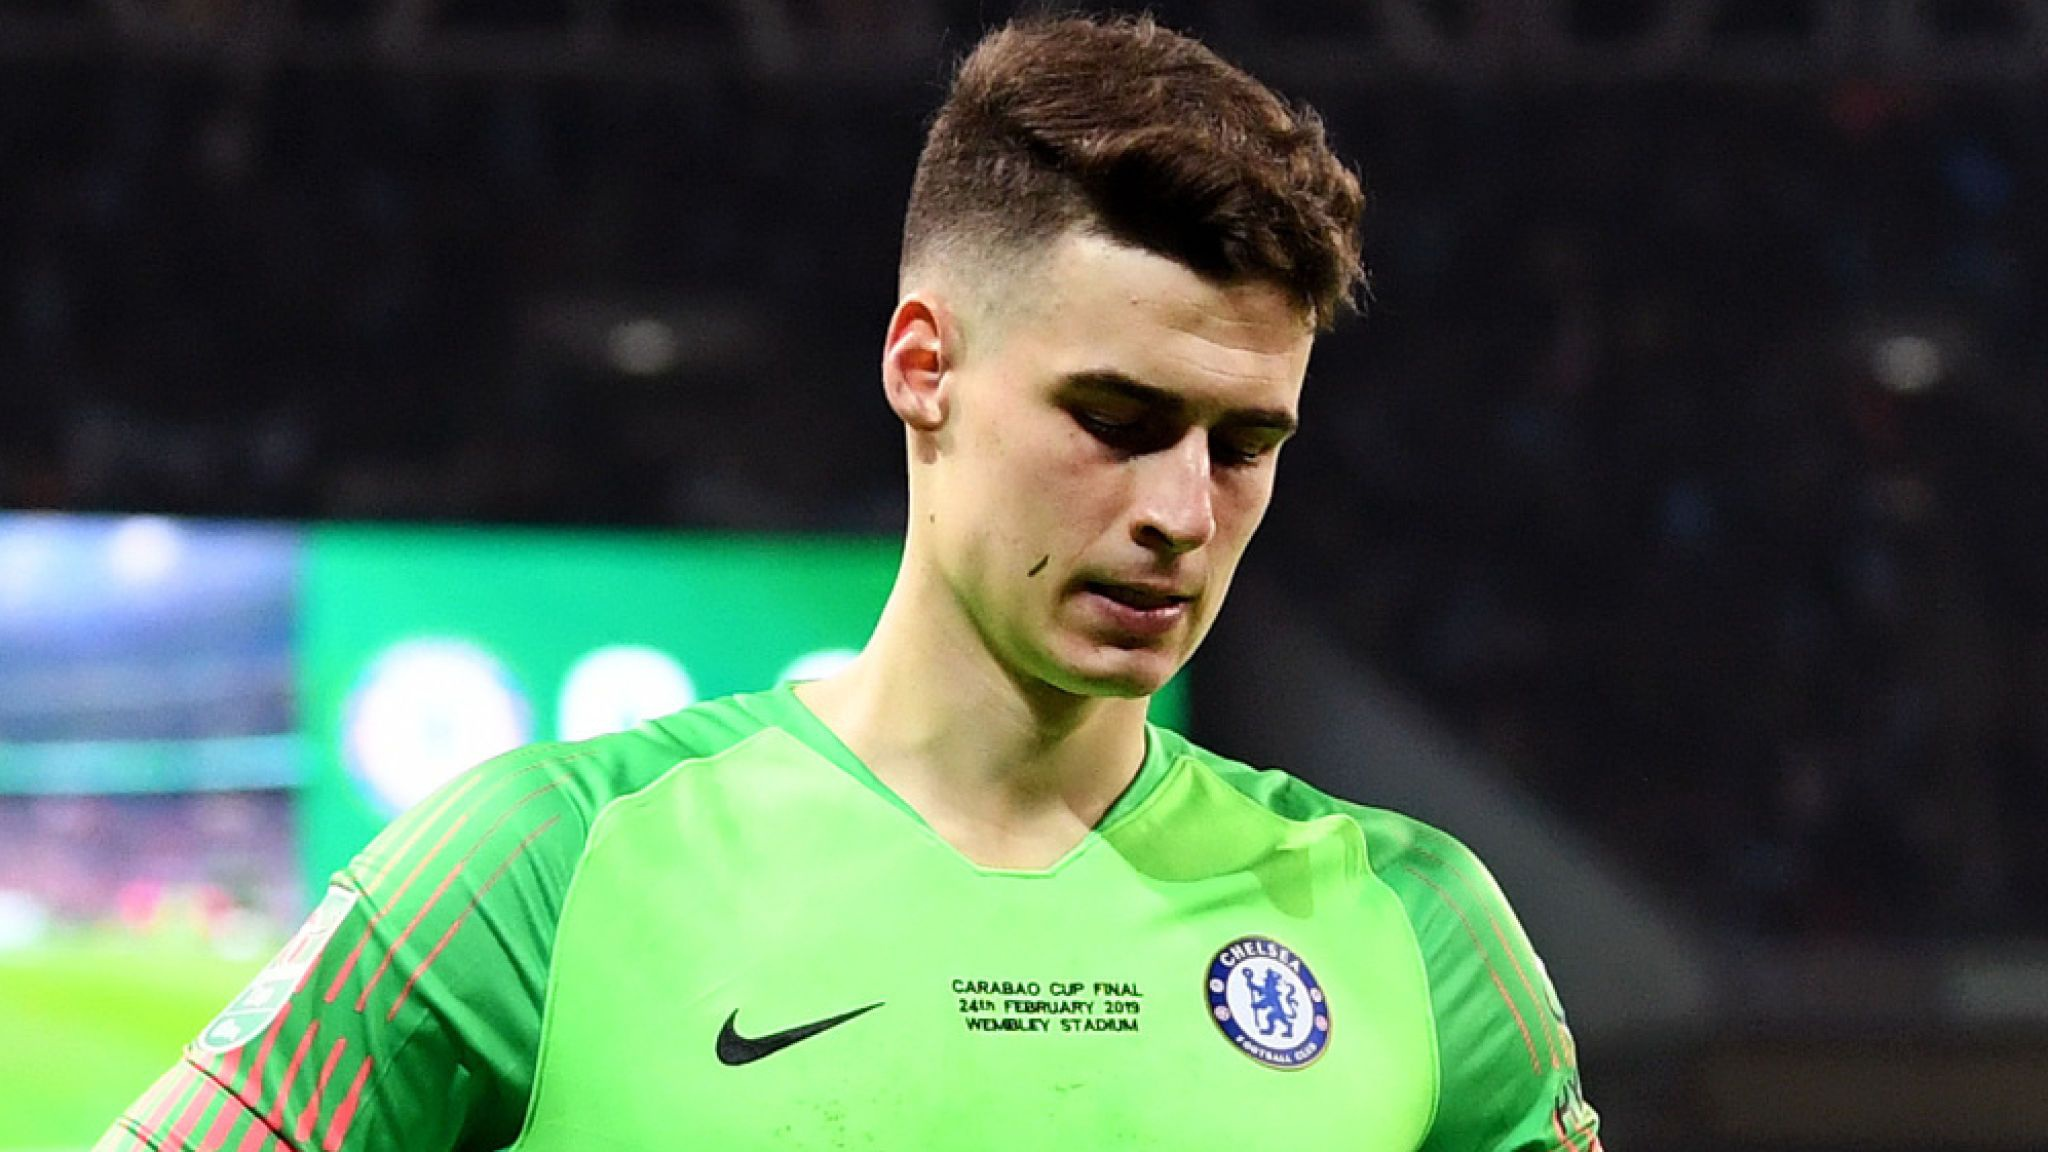 Lampard told chelsea board to sell kepa - Bóng Đá